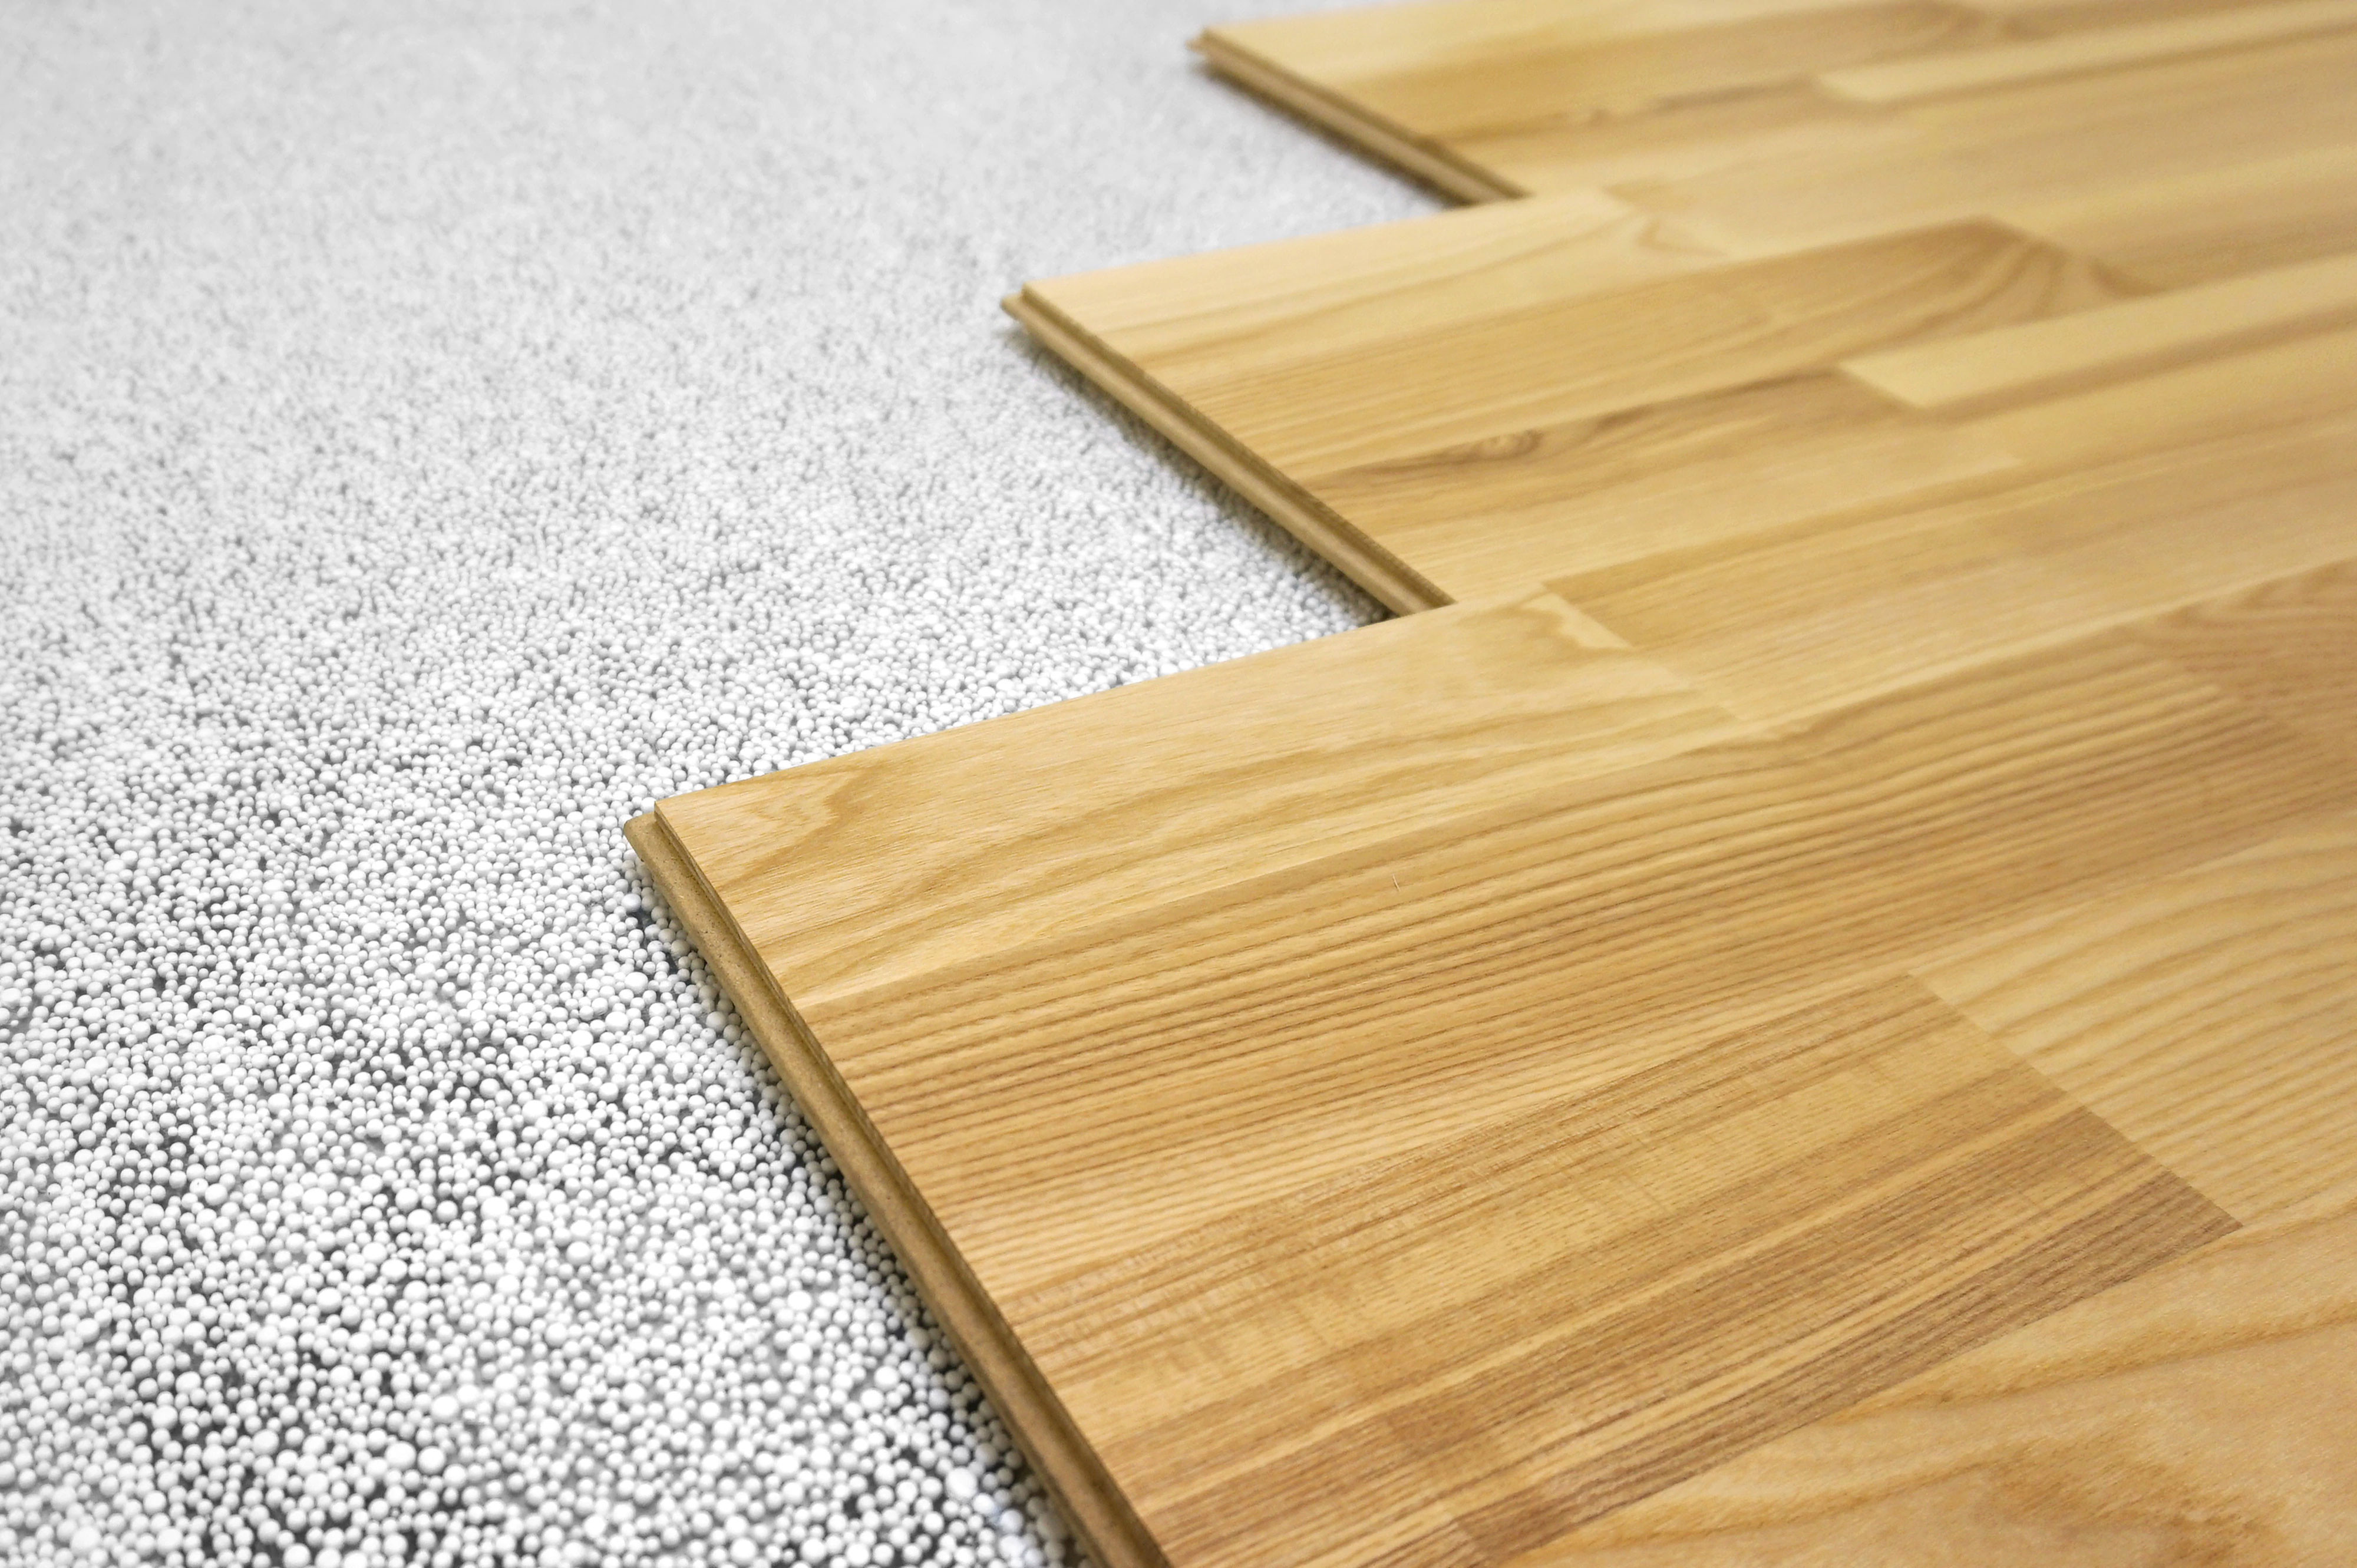 3 4 inch hardwood flooring cost of what does it cost to install laminate flooring angies list within wood lam